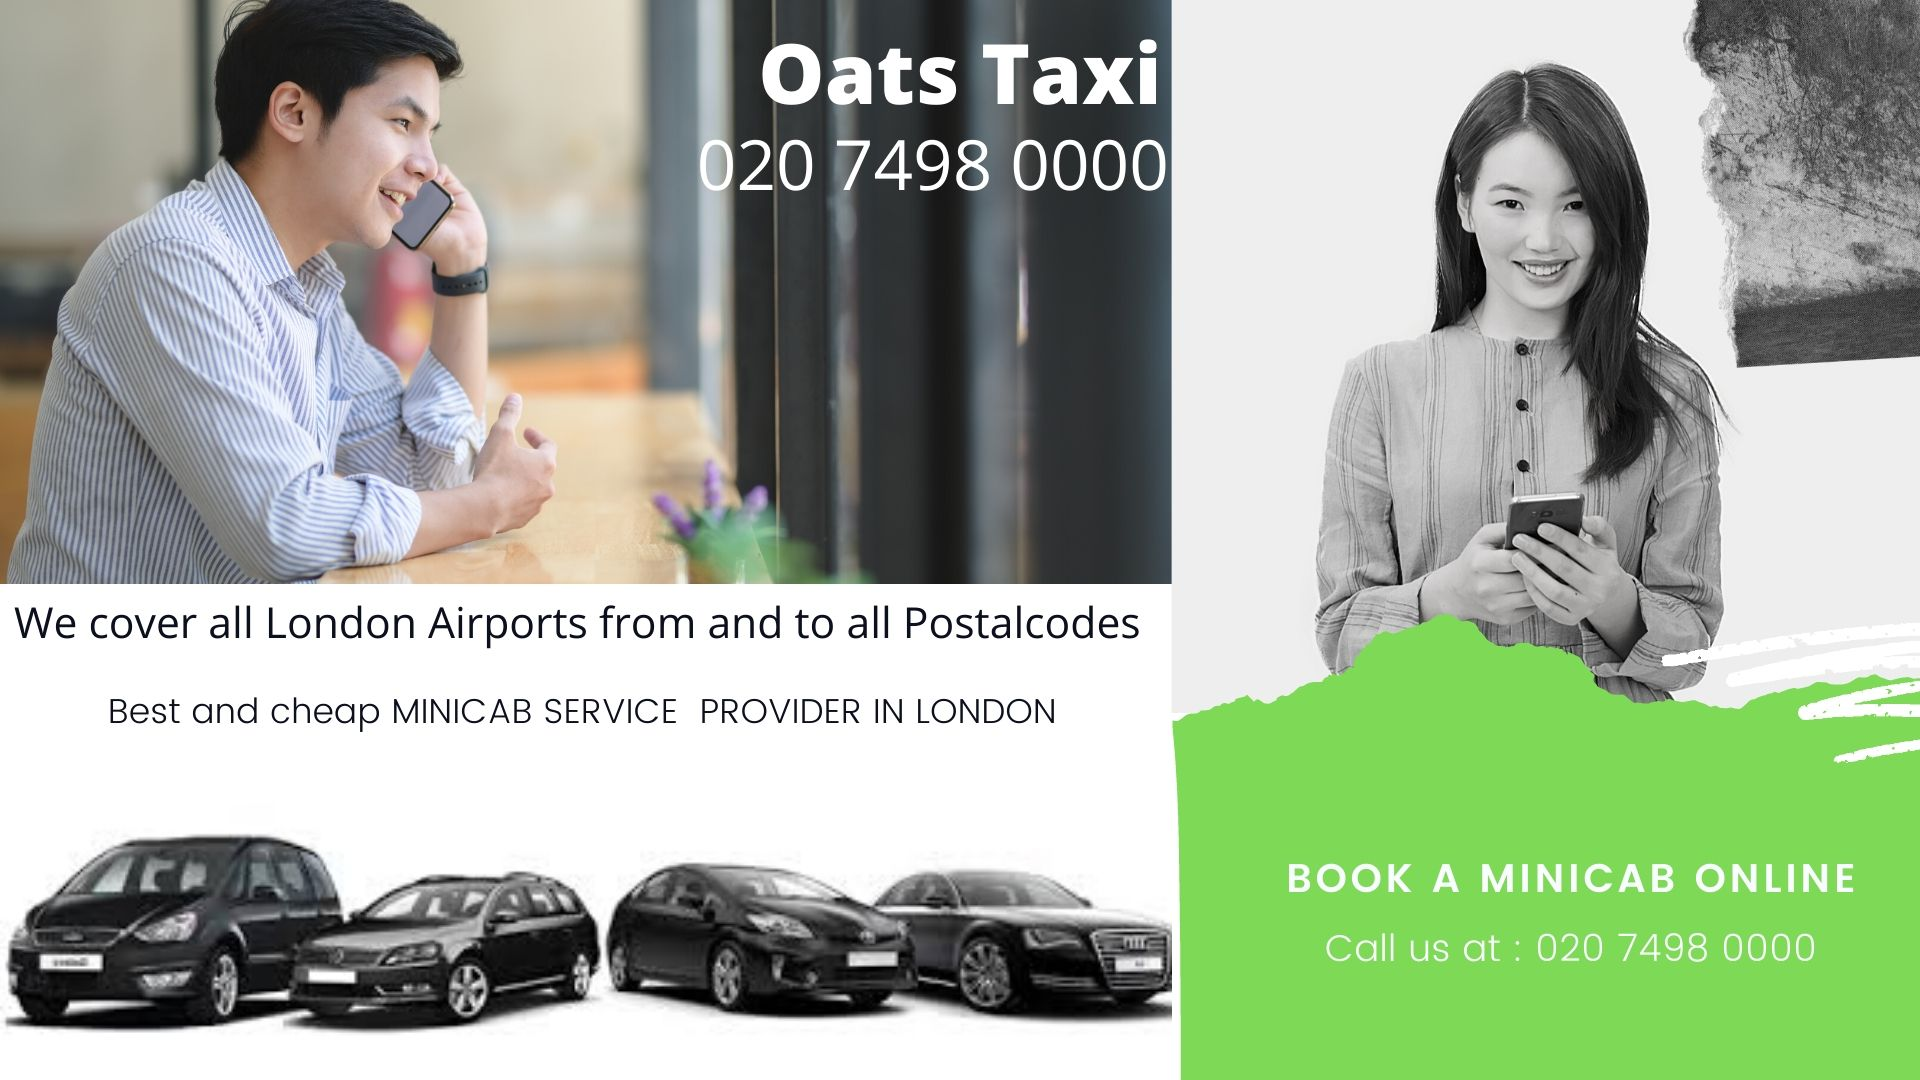 Nearest Minicab Office in Surbiton | Minicab Gatwick Airport | Call now : 02074980000